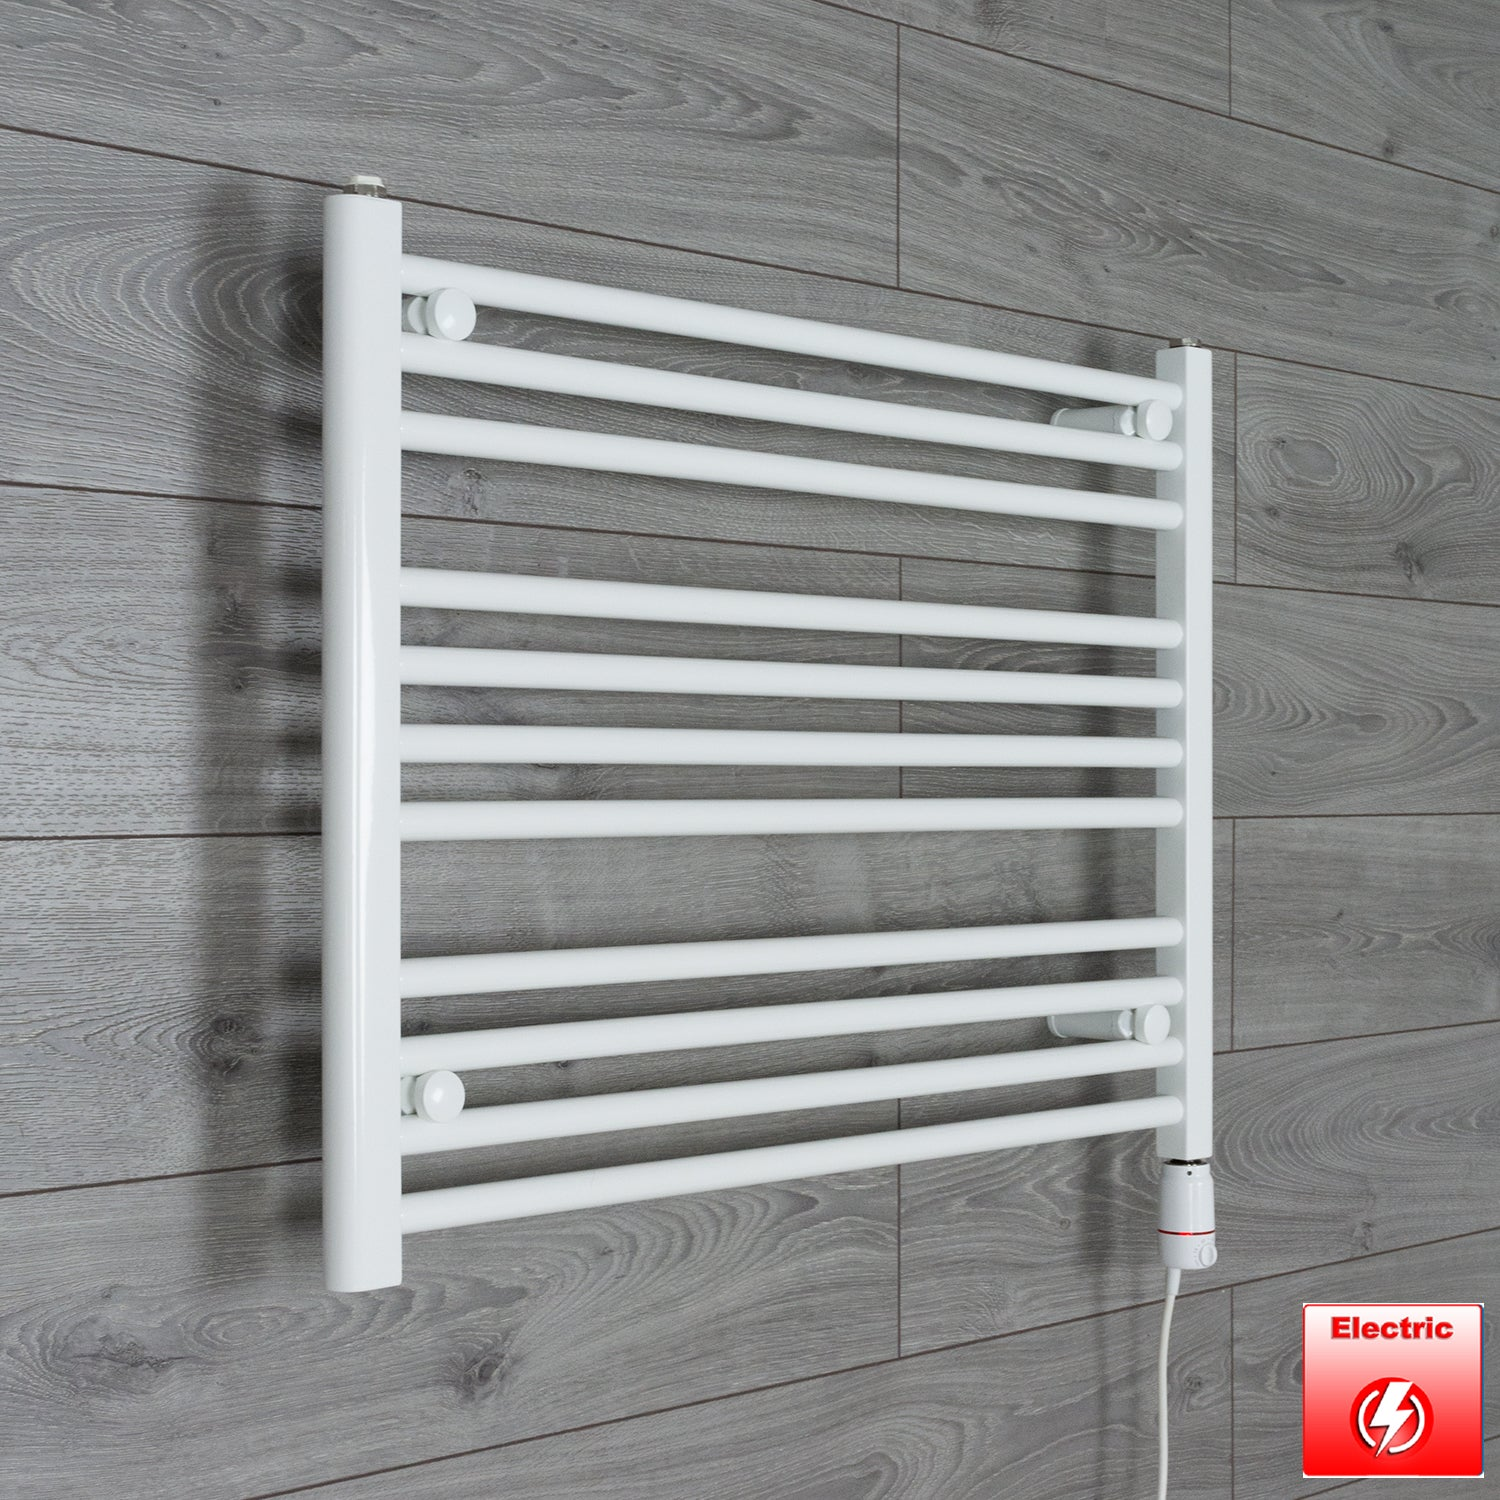 750mm Wide 600mm High Flat WHITE Pre-Filled Electric Heated Towel Rail Radiator HTR,GT Thermostatic